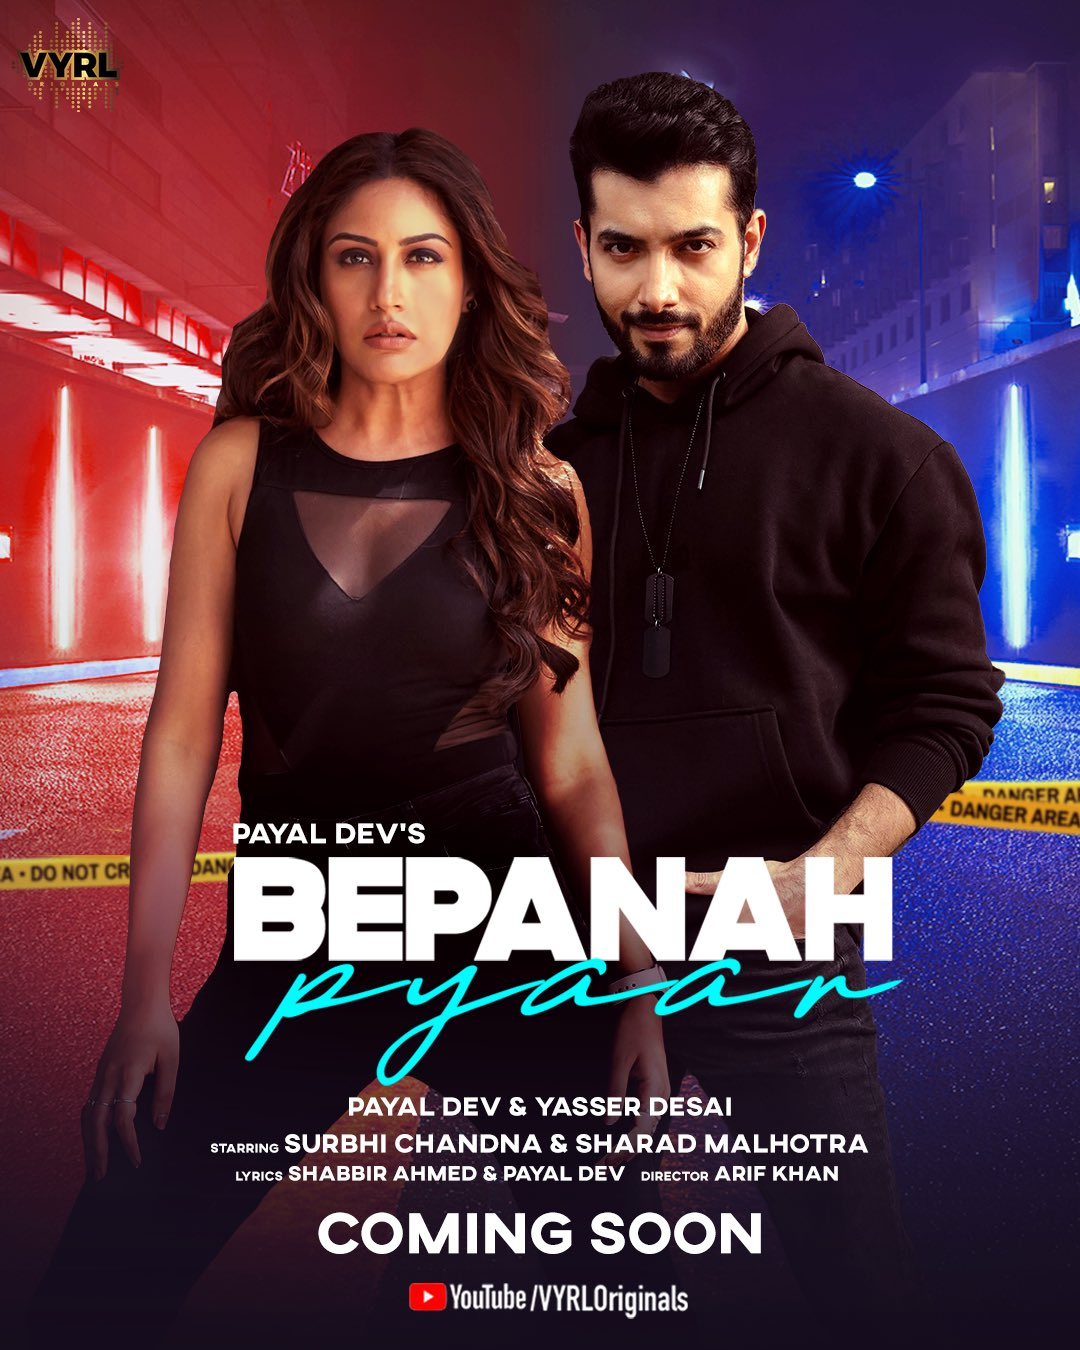 Bepanah Pyaar By Payal Dev & Yasser Desai Official Music Video 1080p HDRip 65MB Download